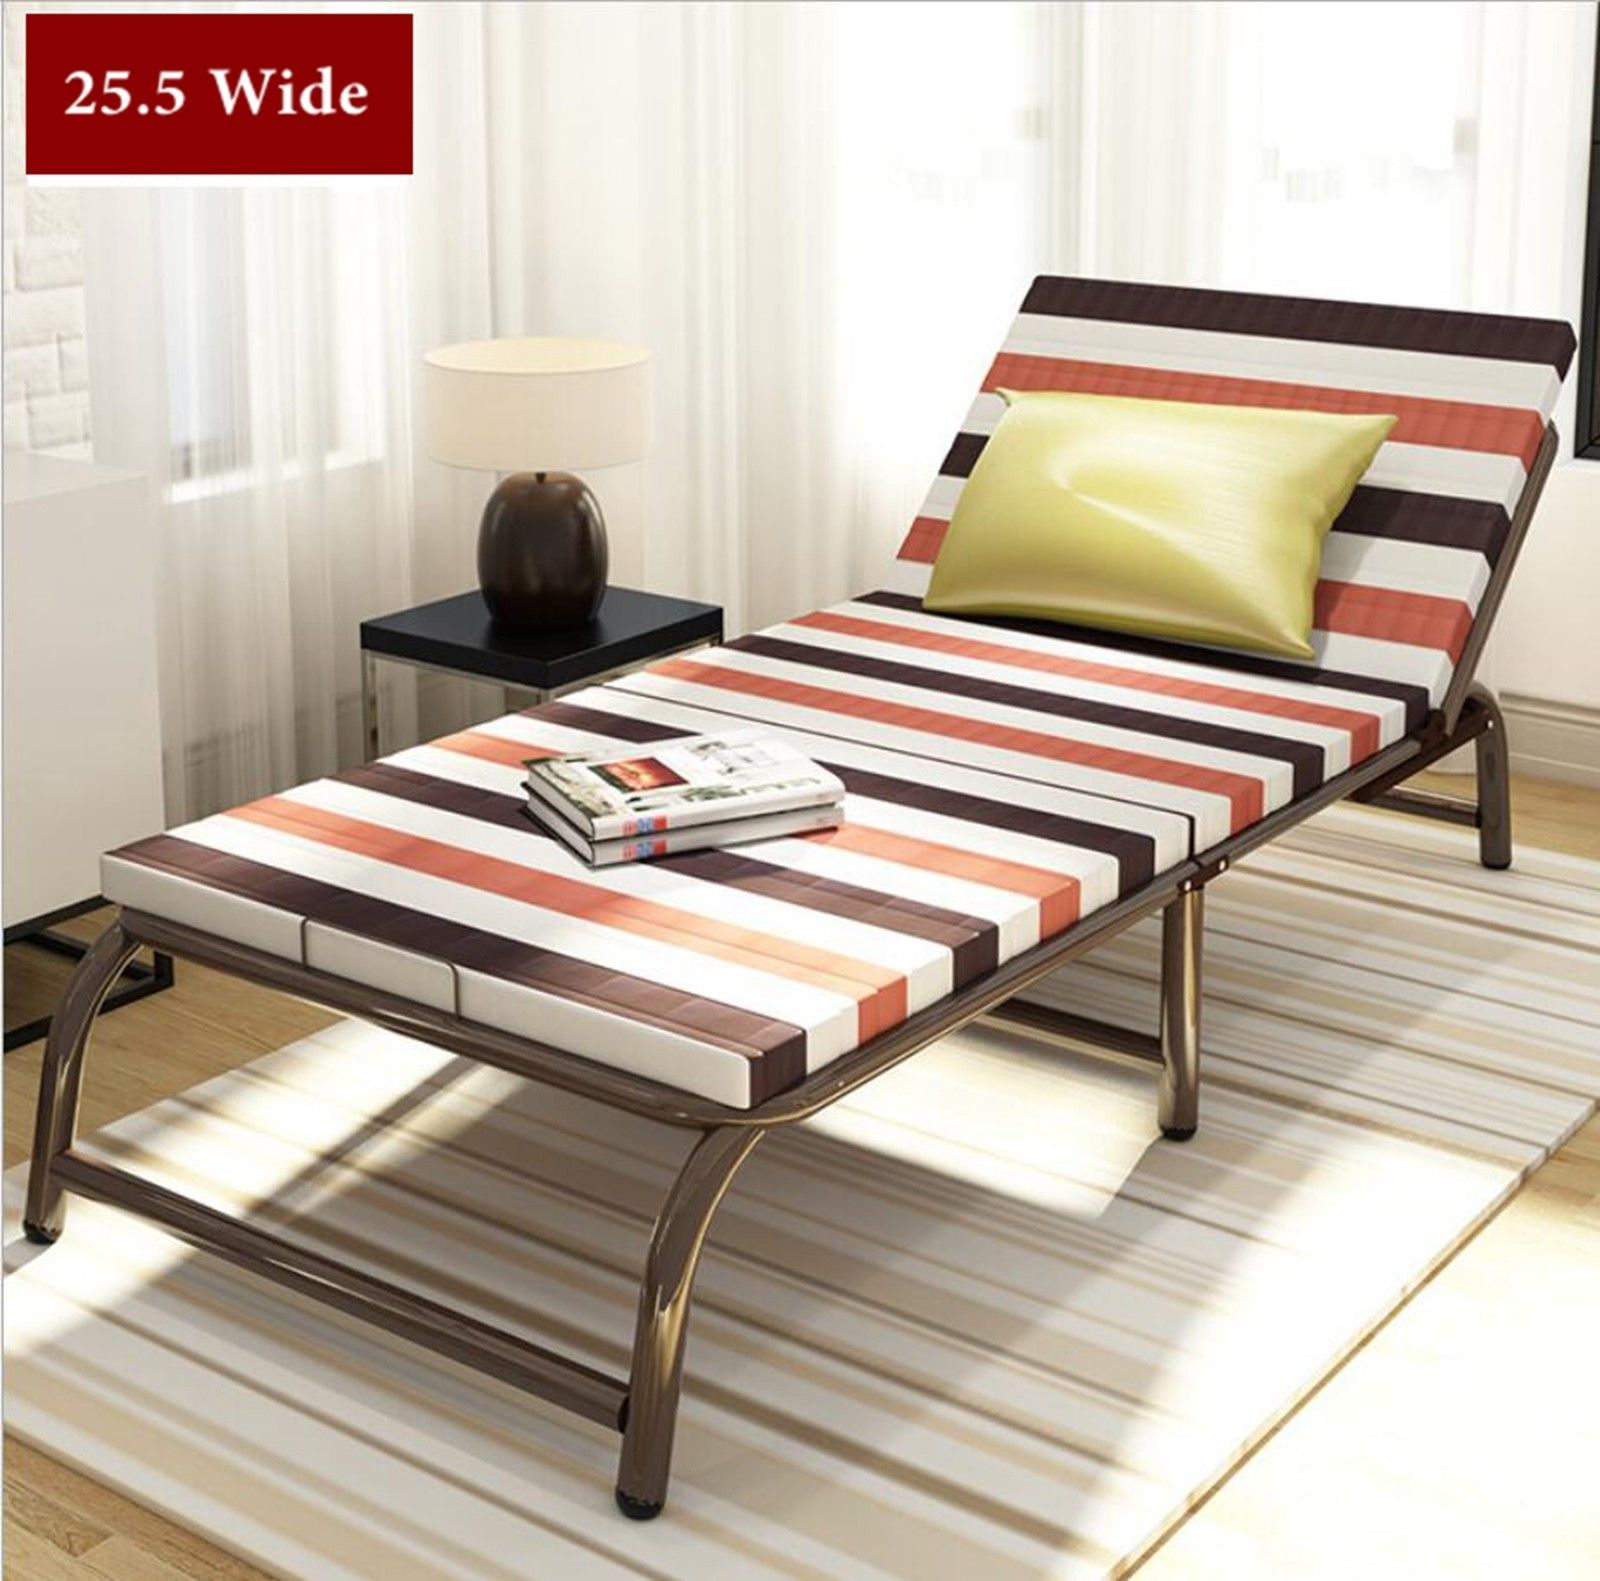 Portable Folding Bed With Frame Guest Bed Mattress Bedding ...